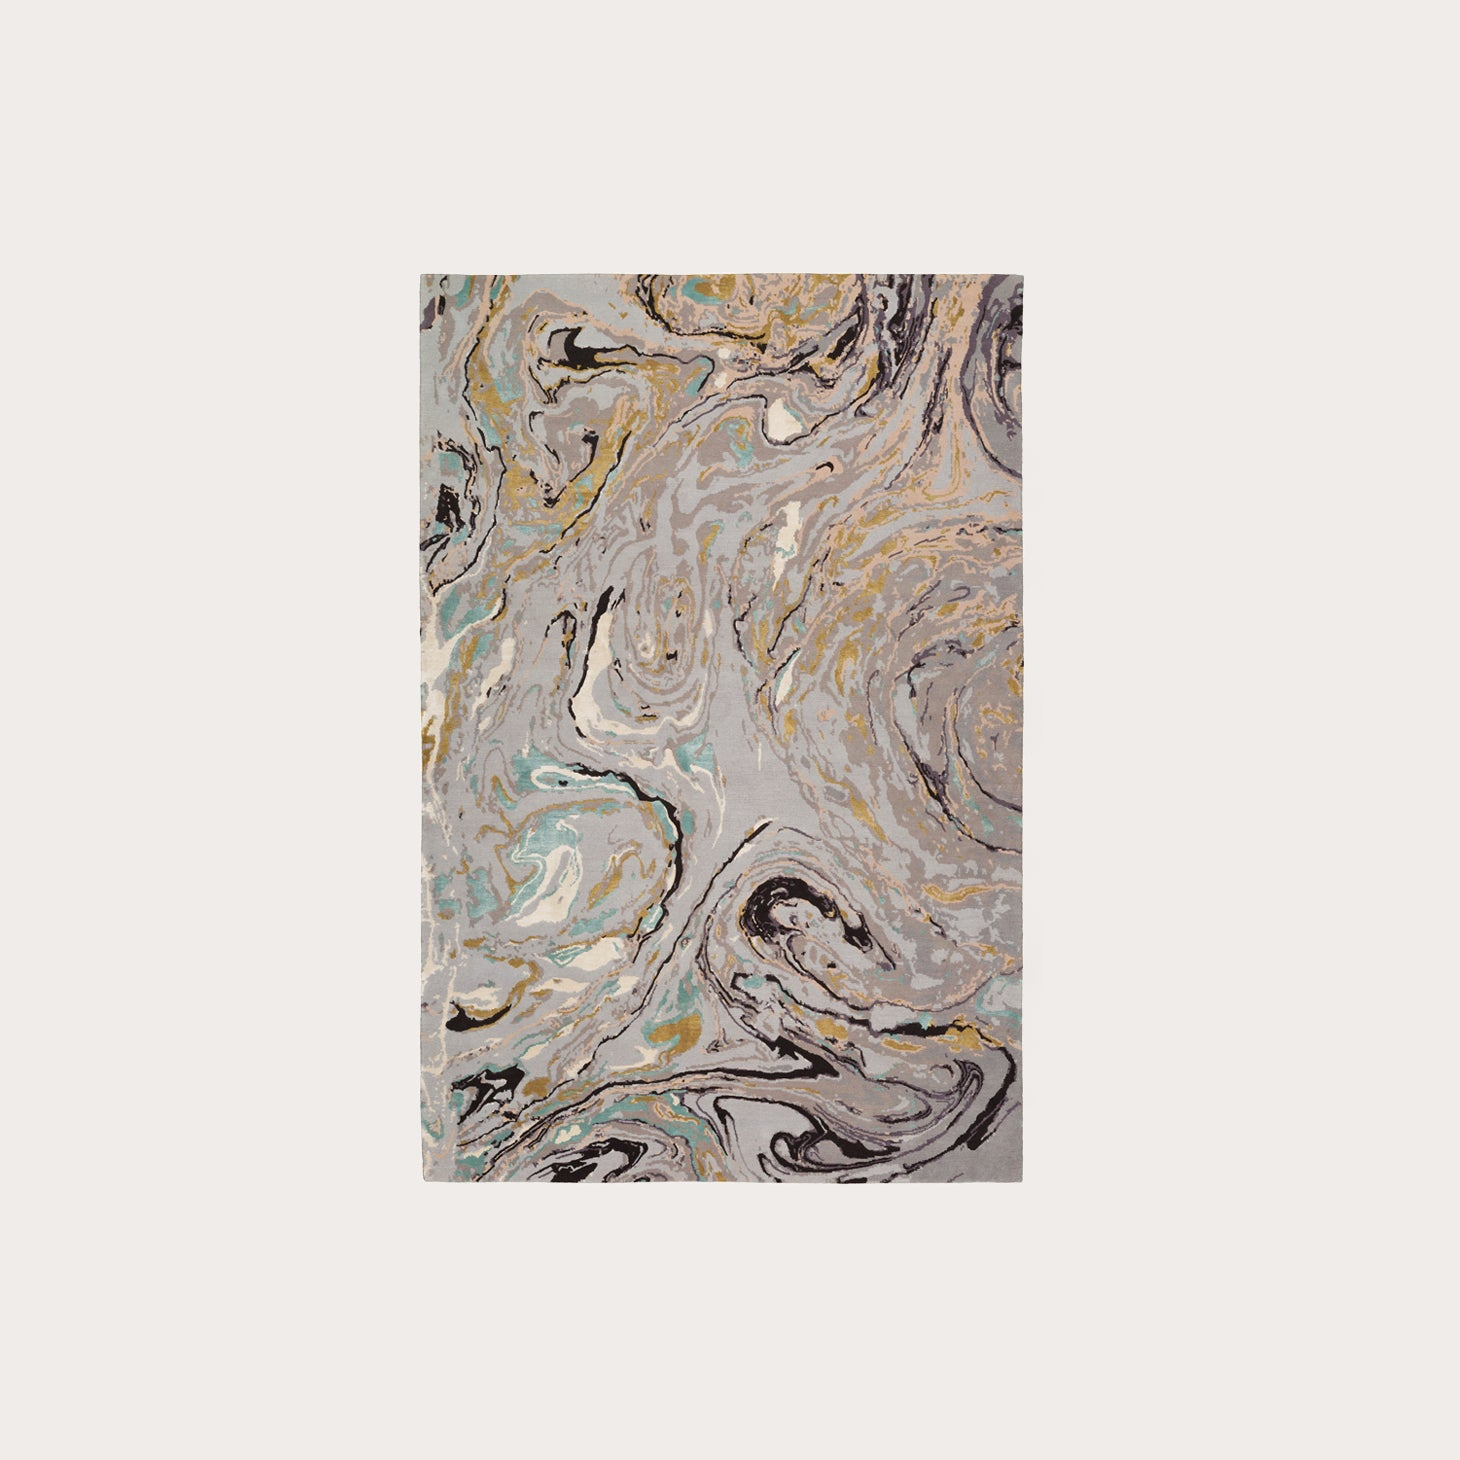 Marble Floor Coverings Rodarte Designer Furniture Sku: 391-150-10625